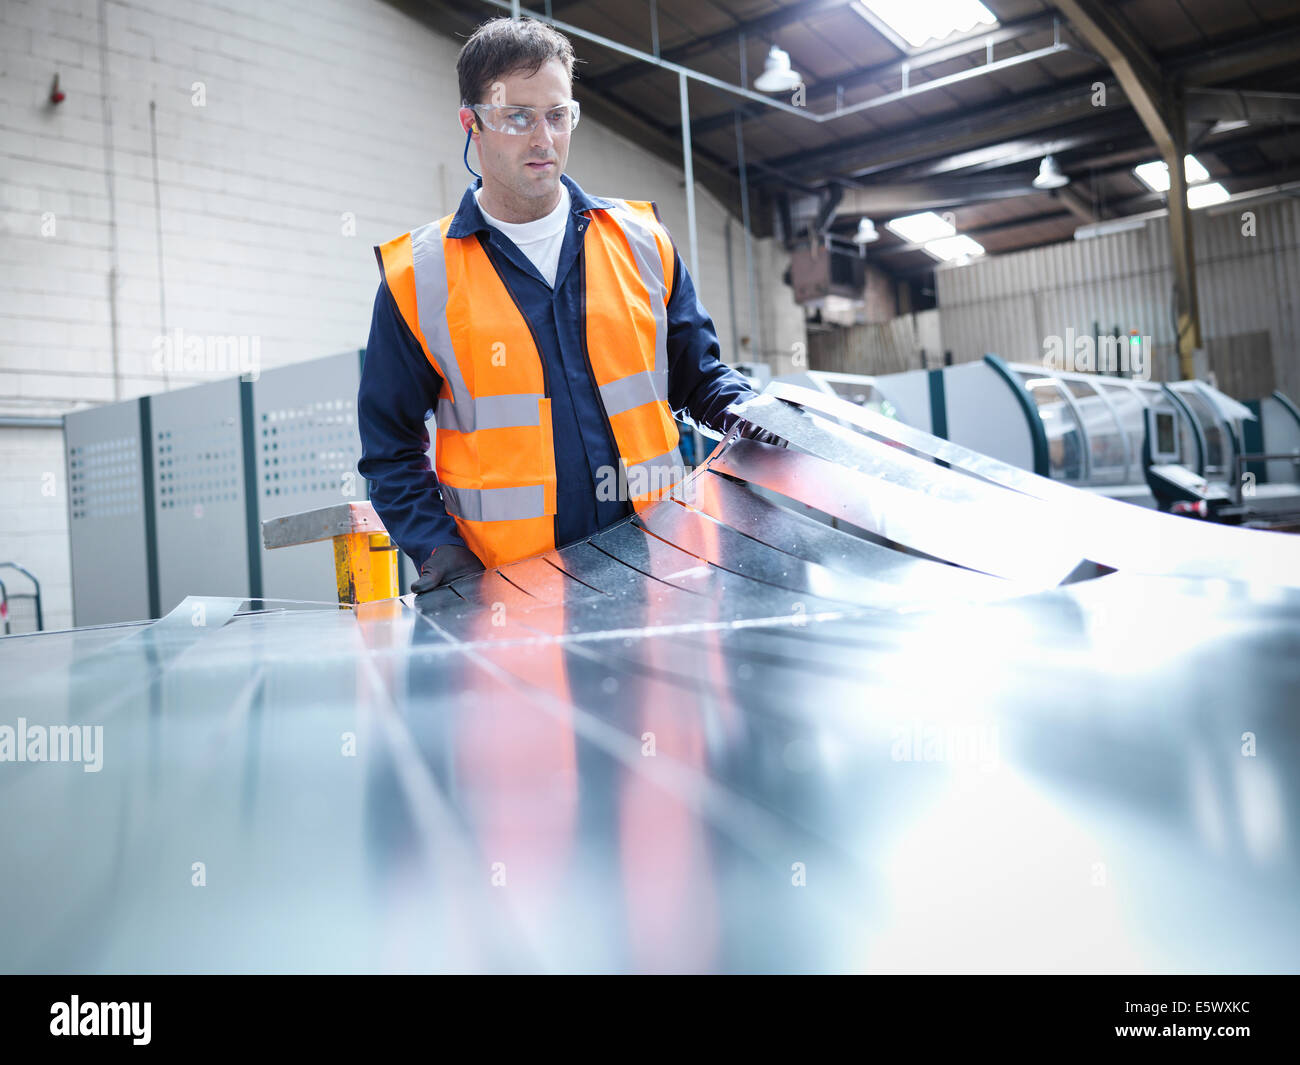 Worker inspecting newly cut parts in sheet metal factory - Stock Image